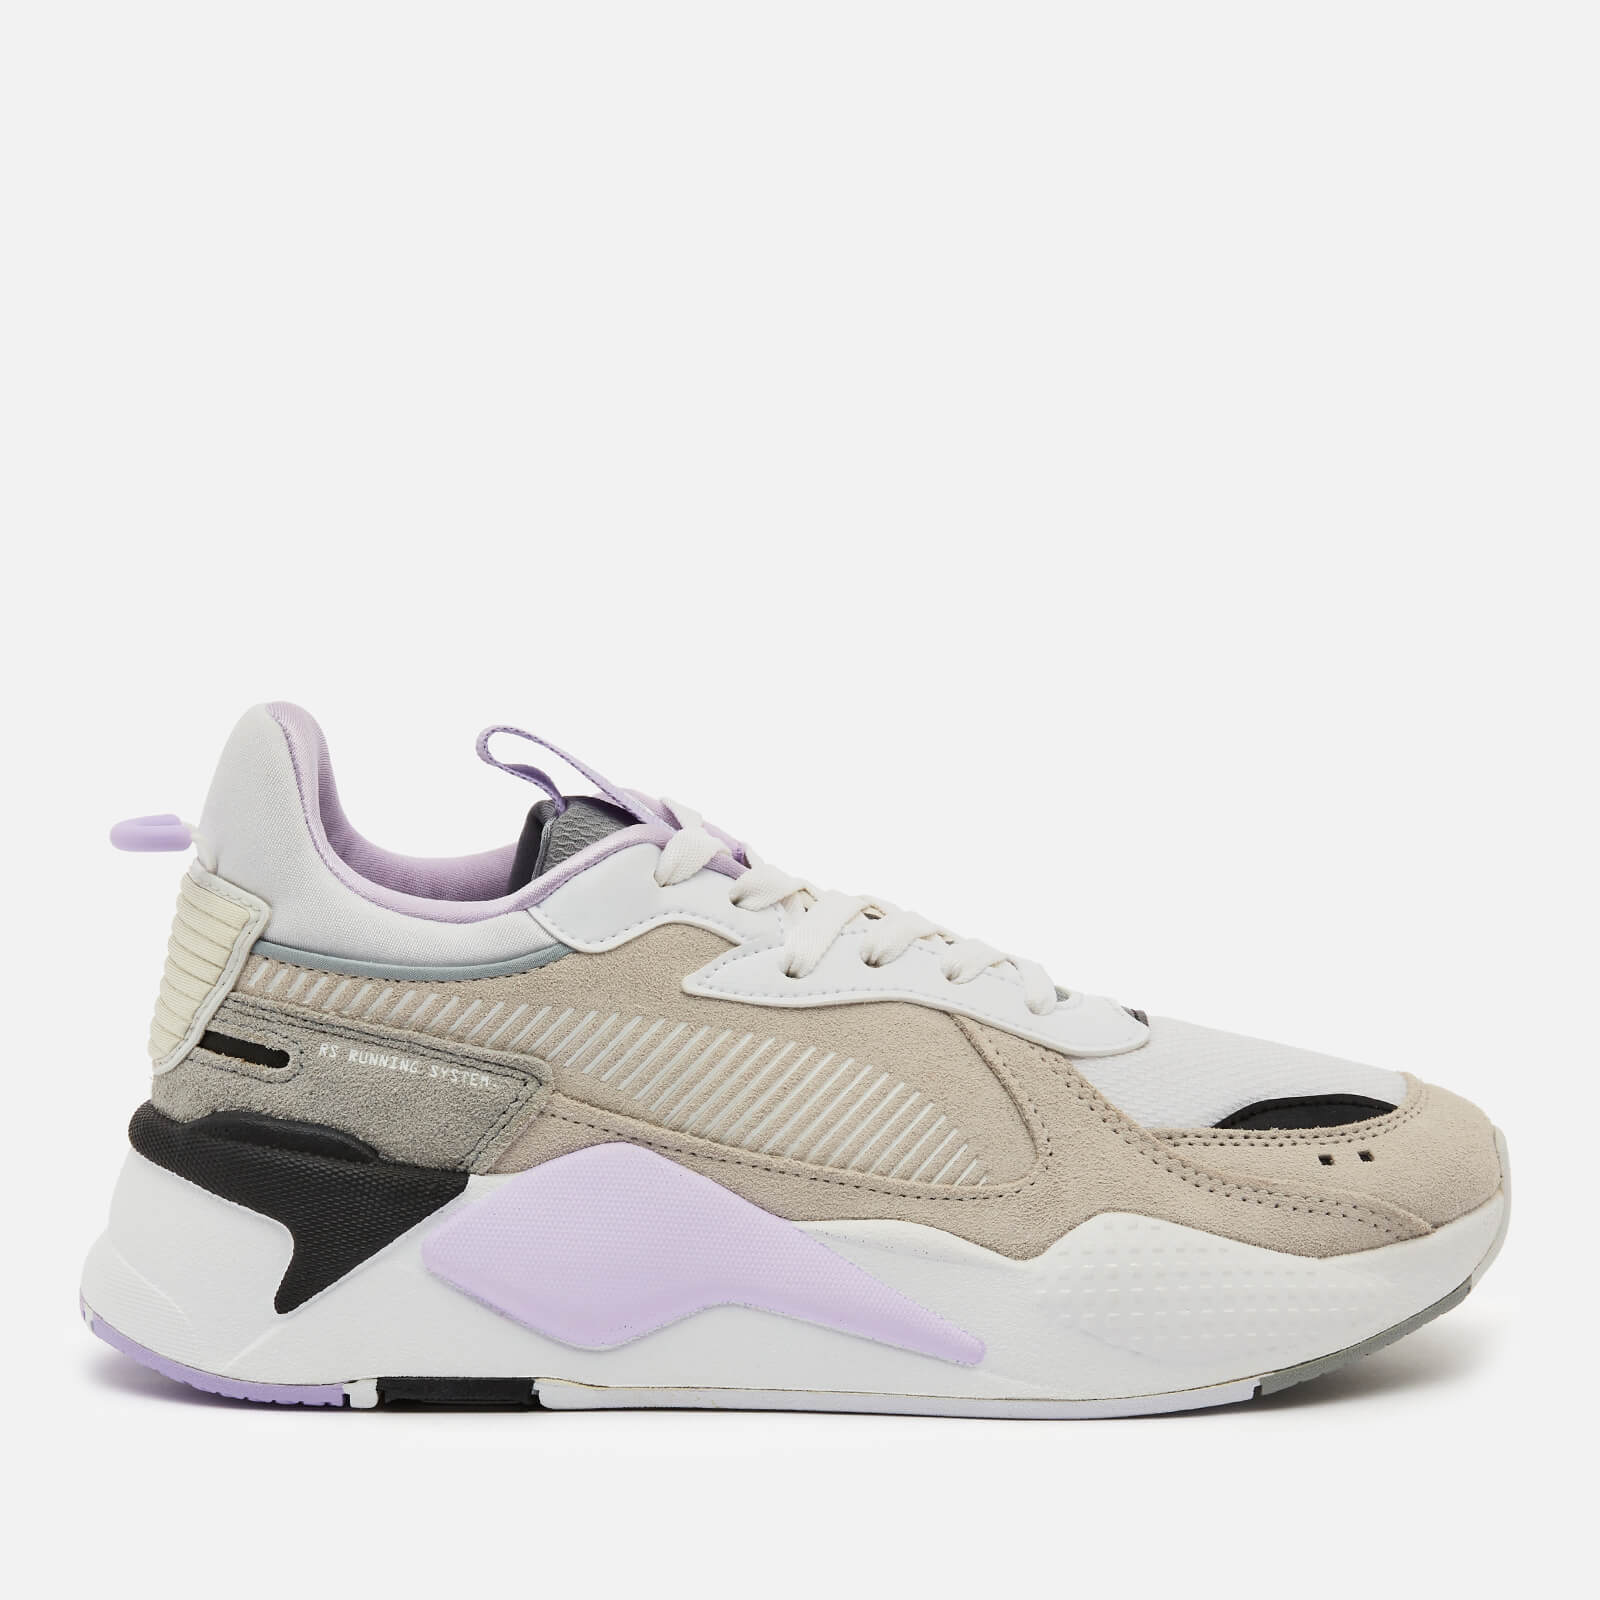 Puma Womens Rs X Reinvent Running Style Trainers Nimbus Cloud Puma White Light Lavender Uk 4